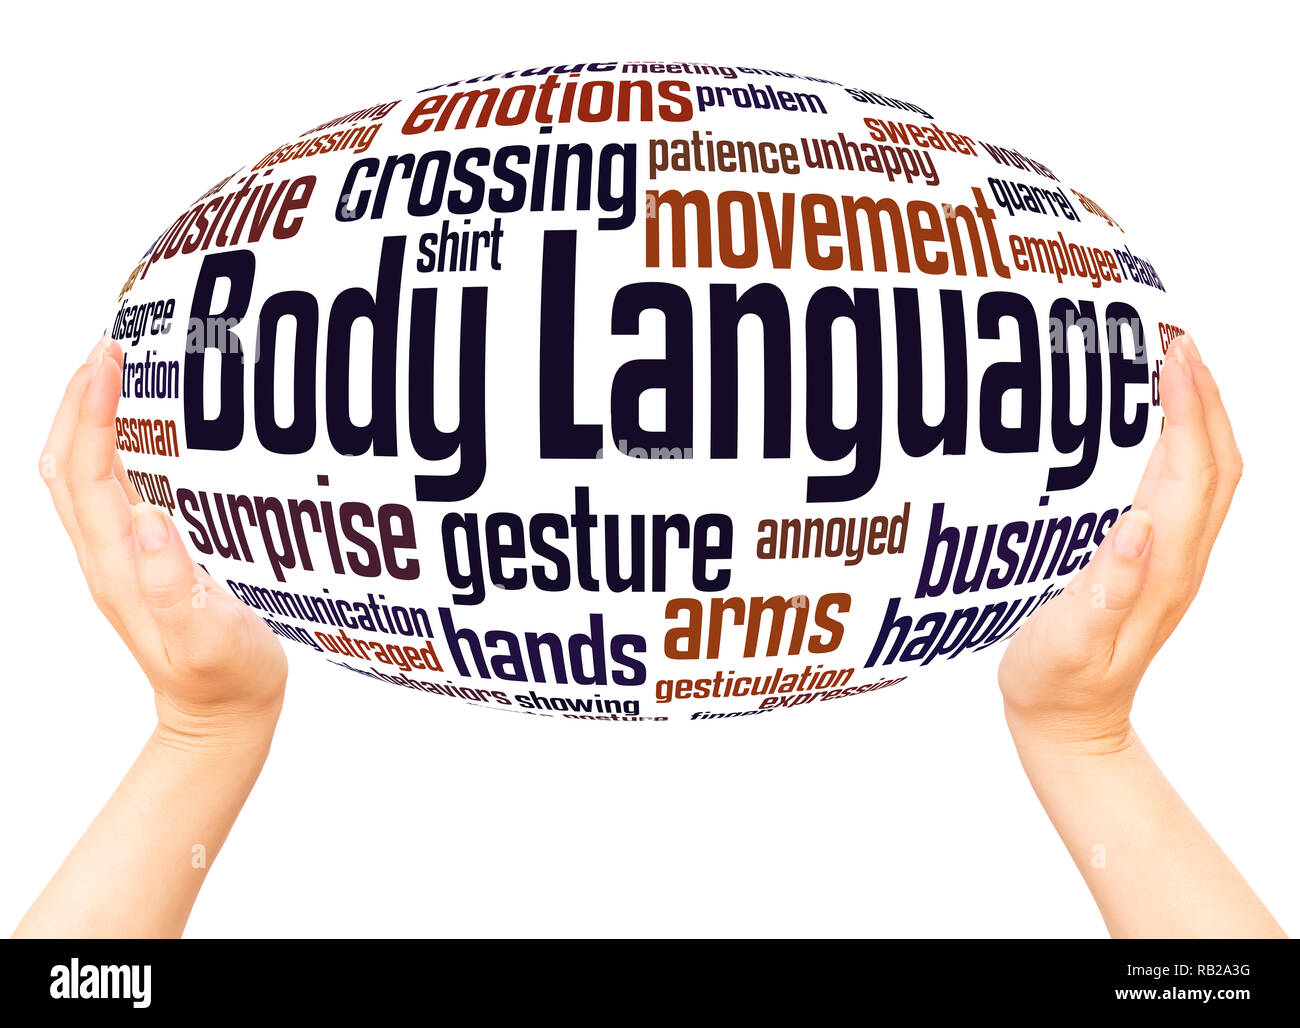 Body Language word cloud hand sphere concept on white background. - Stock Image